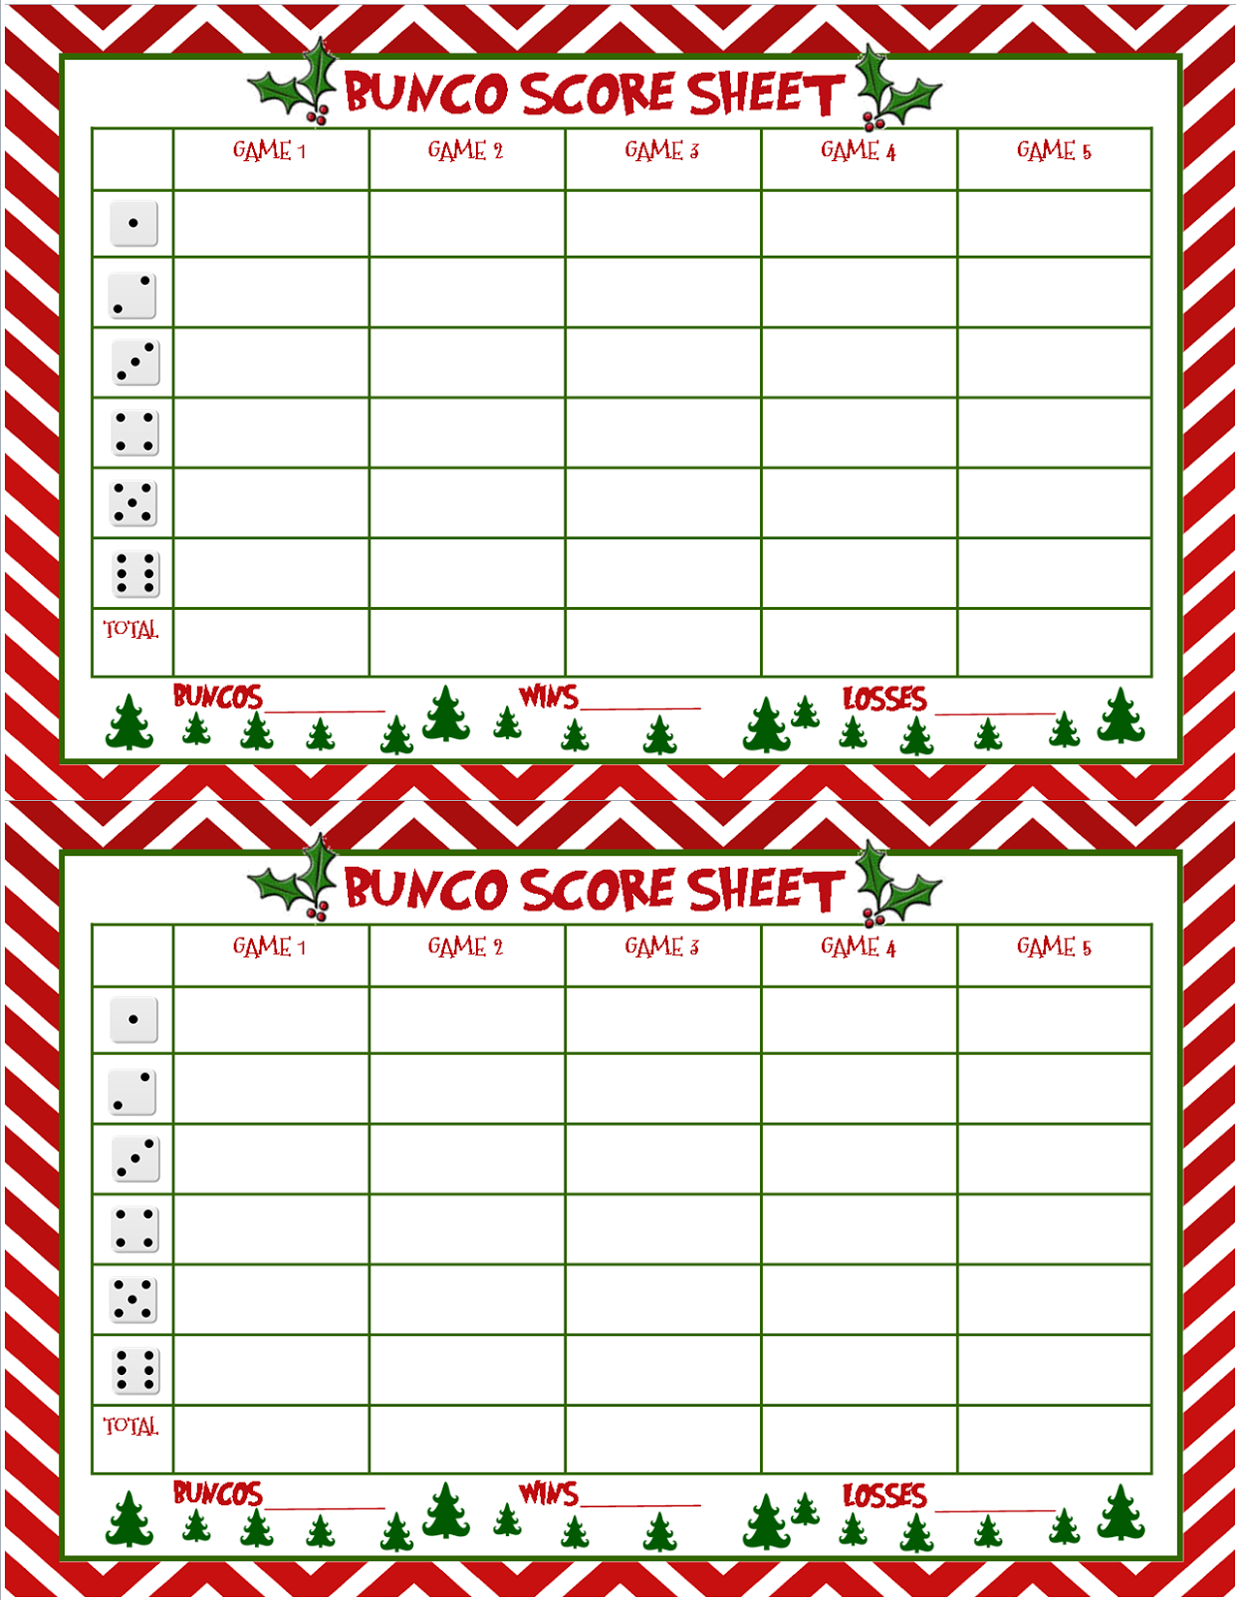 Fabulous image regarding printable bunco sheets